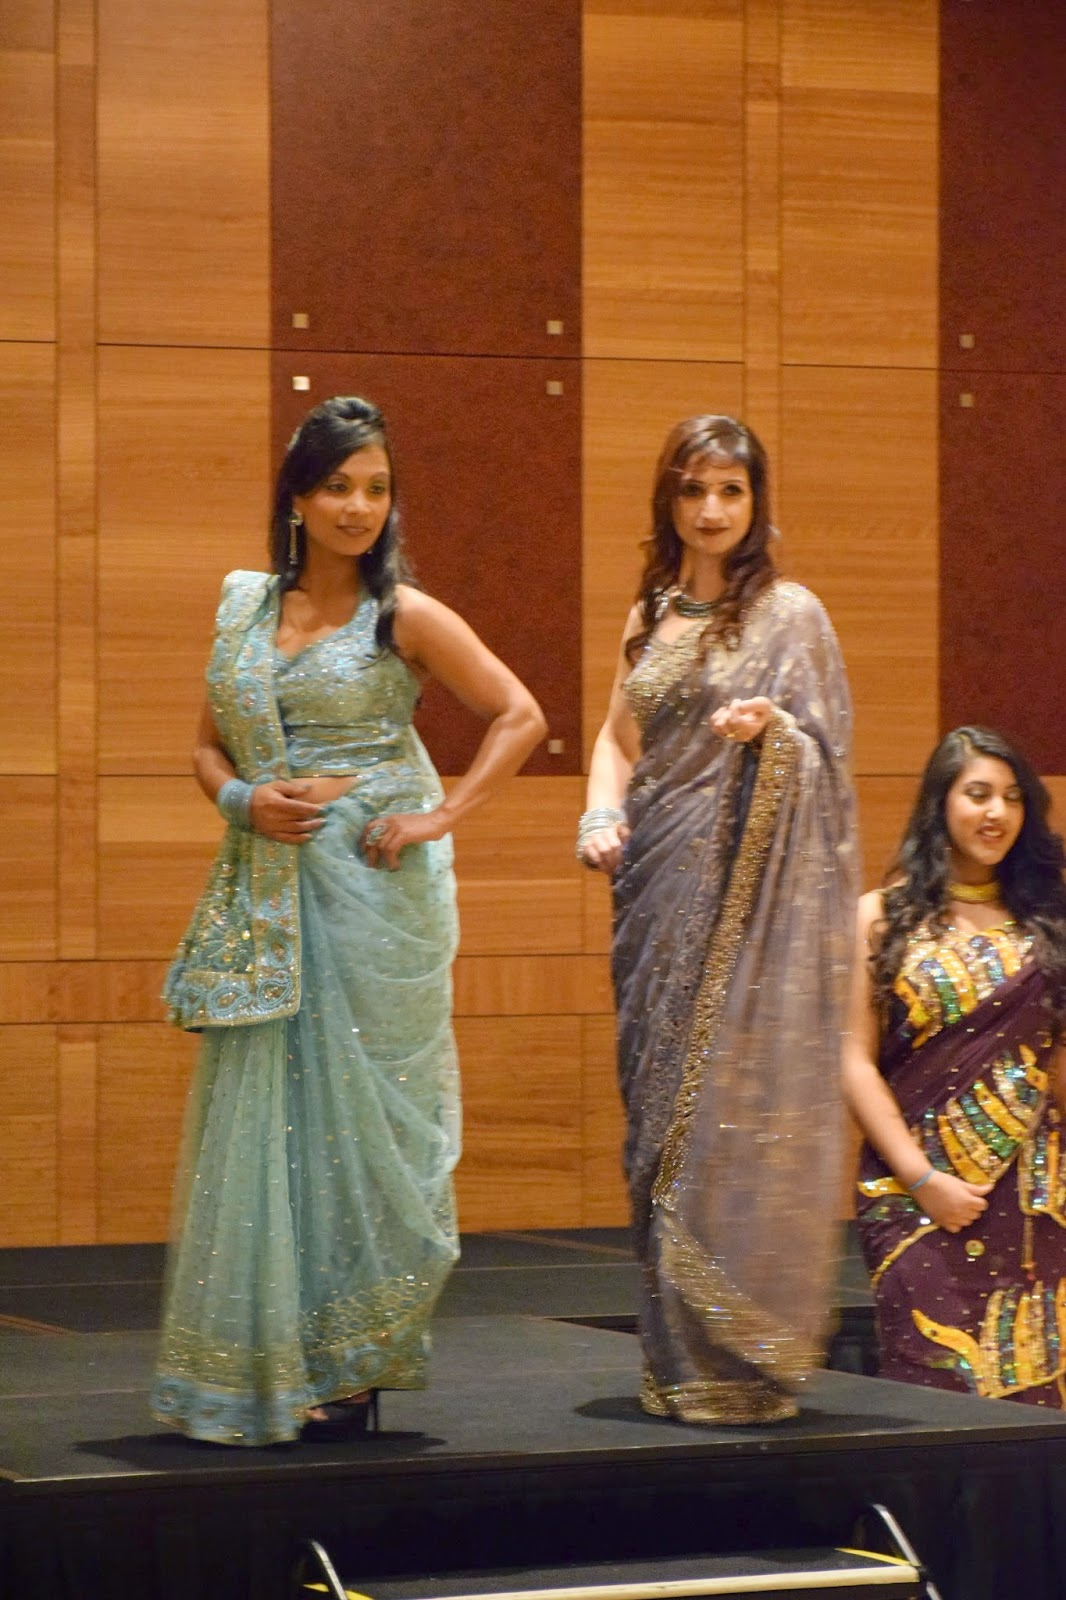 Seattle Fashion show, Hyatt Seattle Fashion Show, Authentic Indian wear, Fashion show in Seattle, Seattle Desi Fashion Show